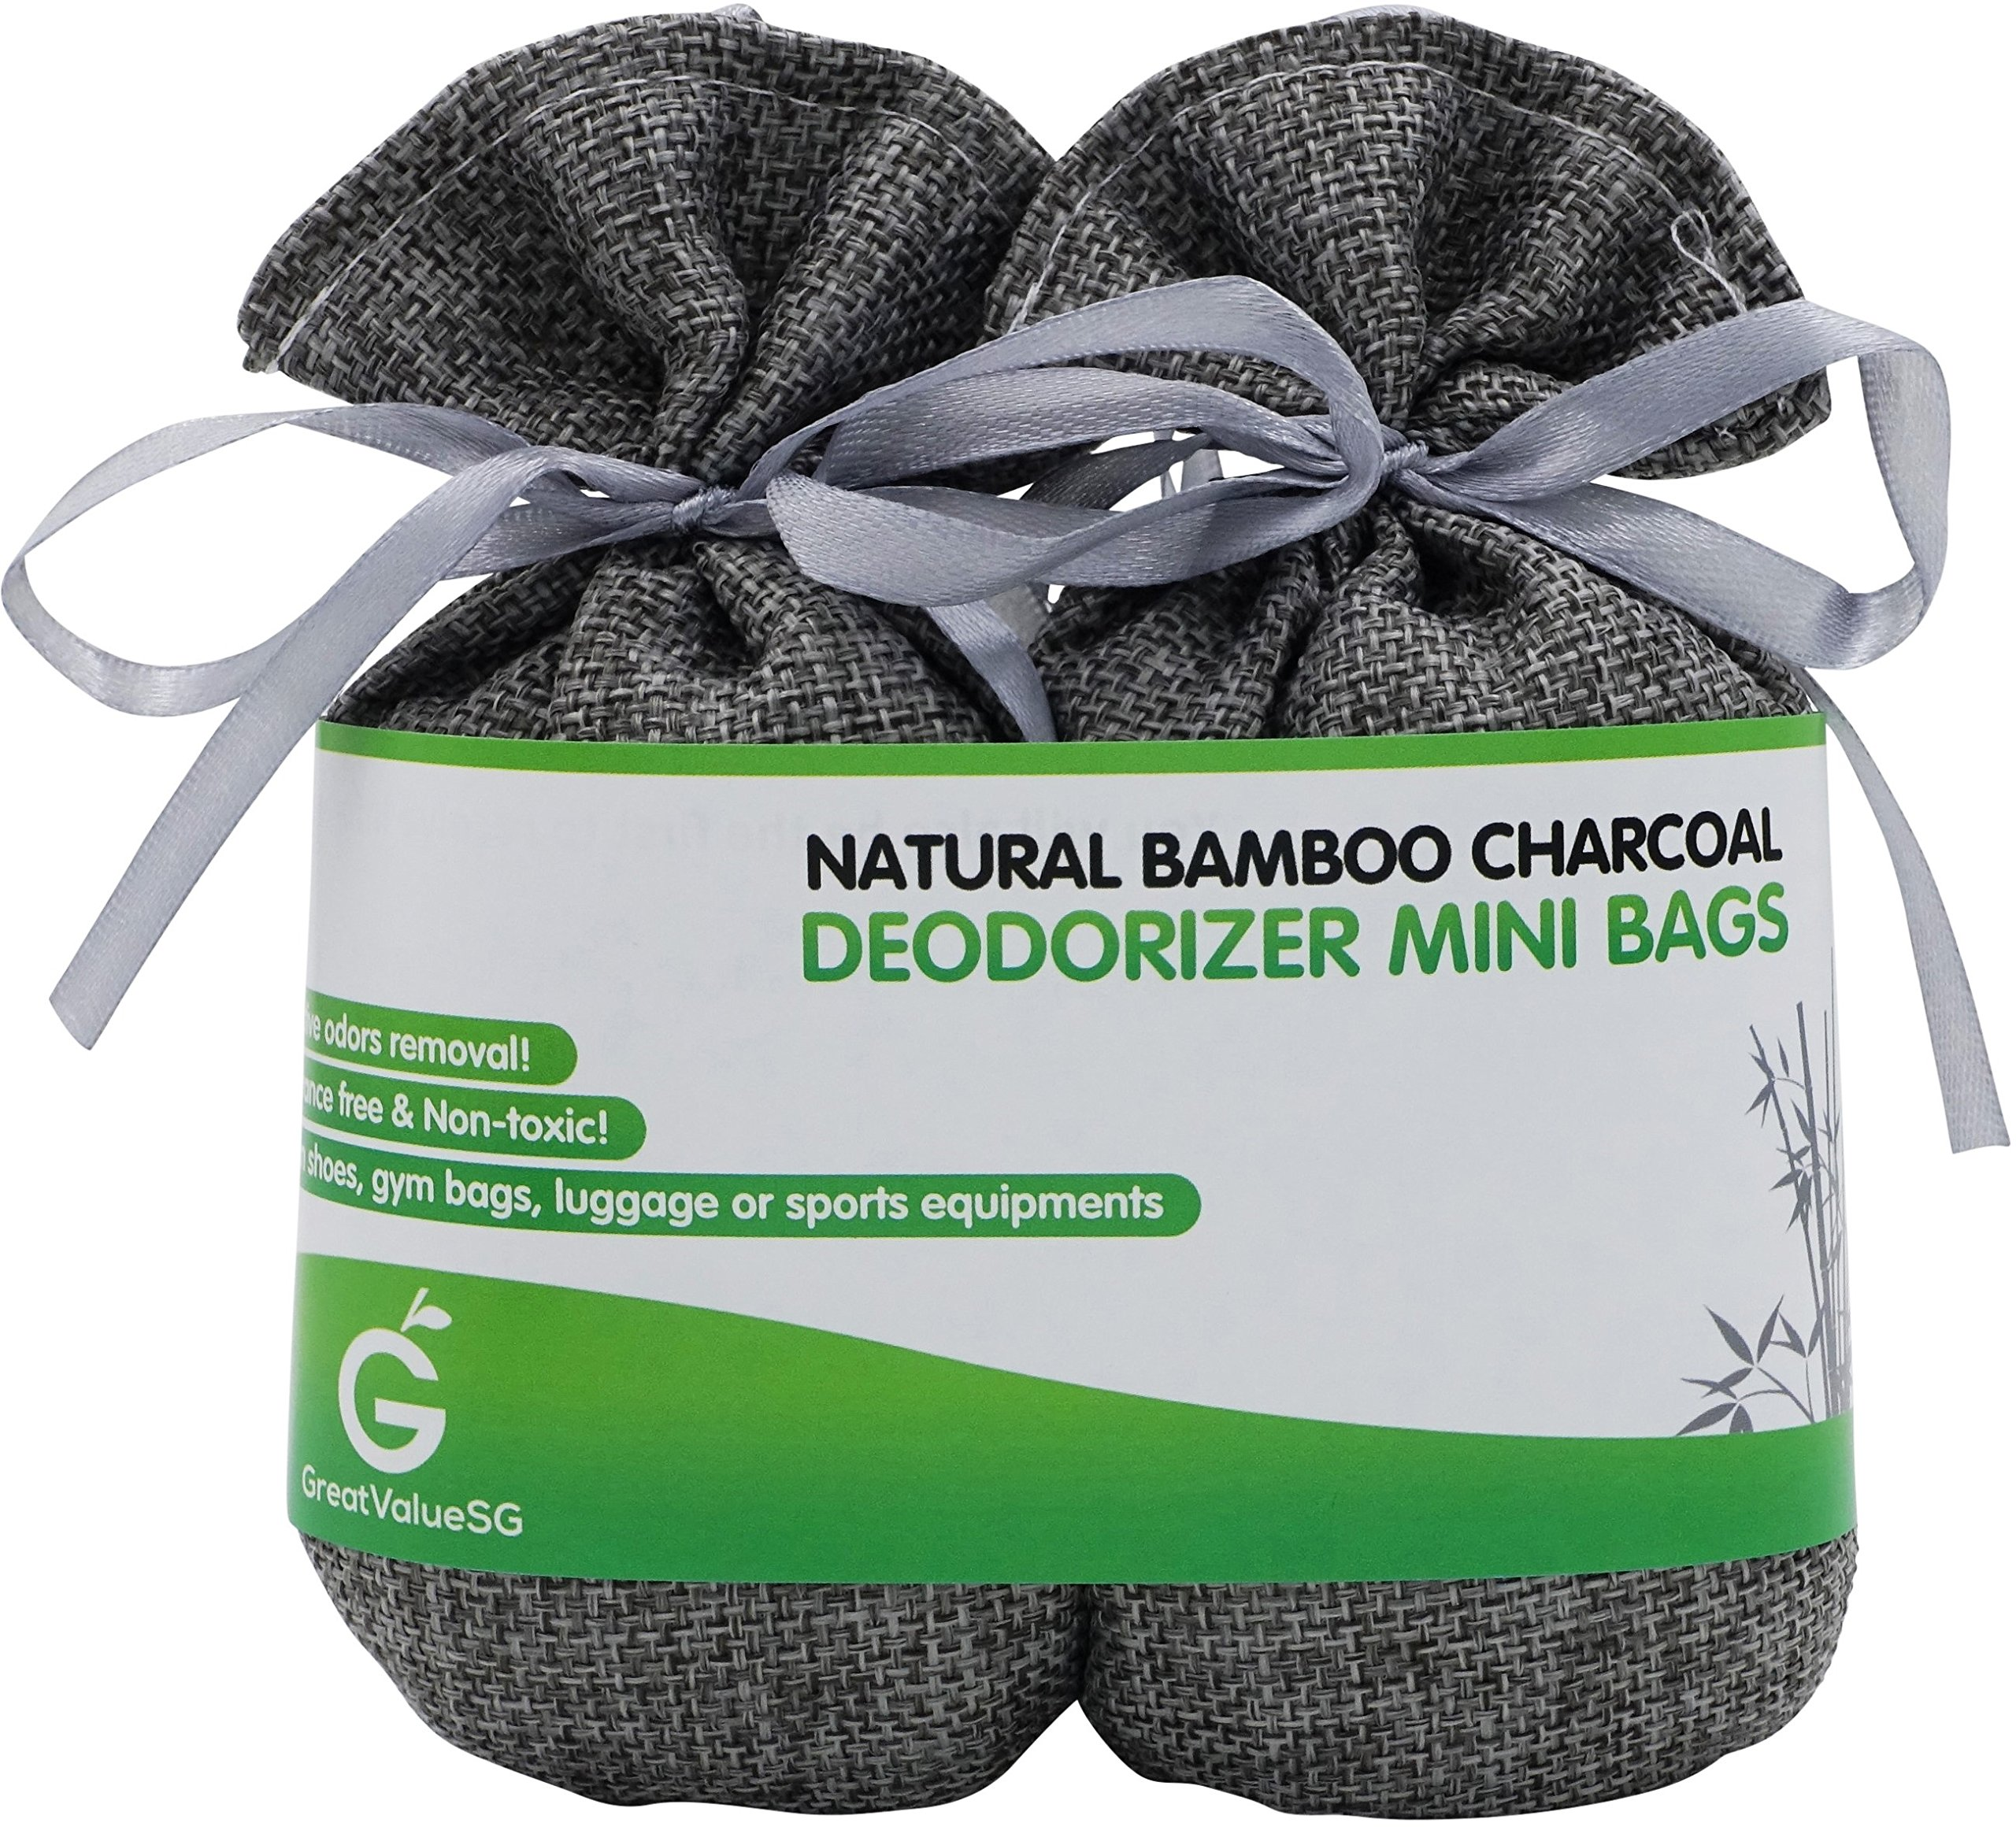 Great Value SG Buy More Save More Bamboo Charcoal Deodorizer Mini Bags, Best Air Purifiers Smokers & Allergies, Perfect Odor & Moisture Absorber Shoe, Gym Bag, Drawer & Locker (Silver Grey)